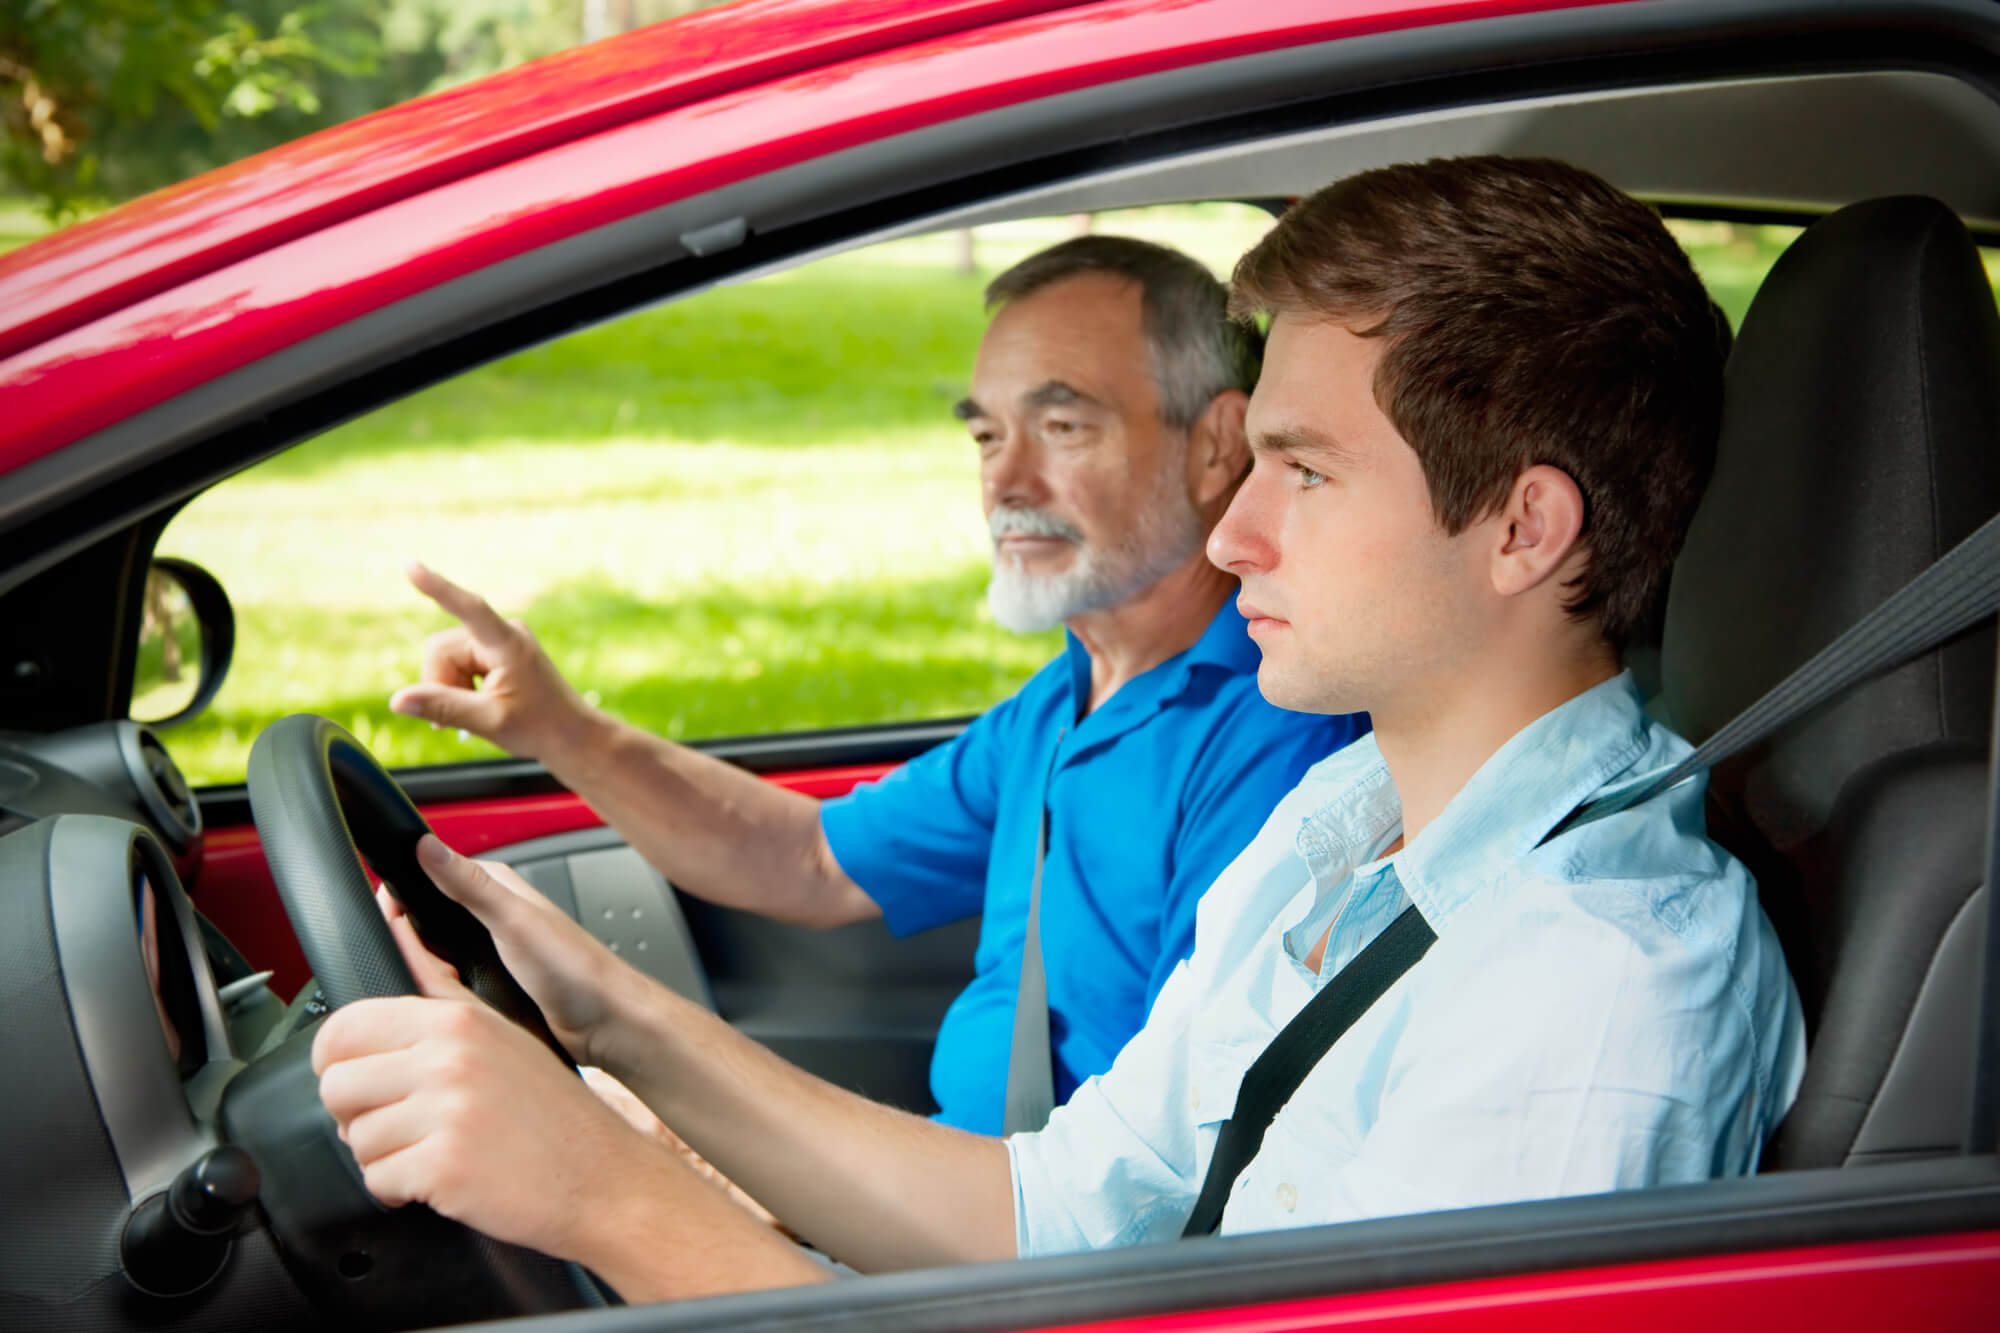 igns Your Teen Isn't Ready to Drive